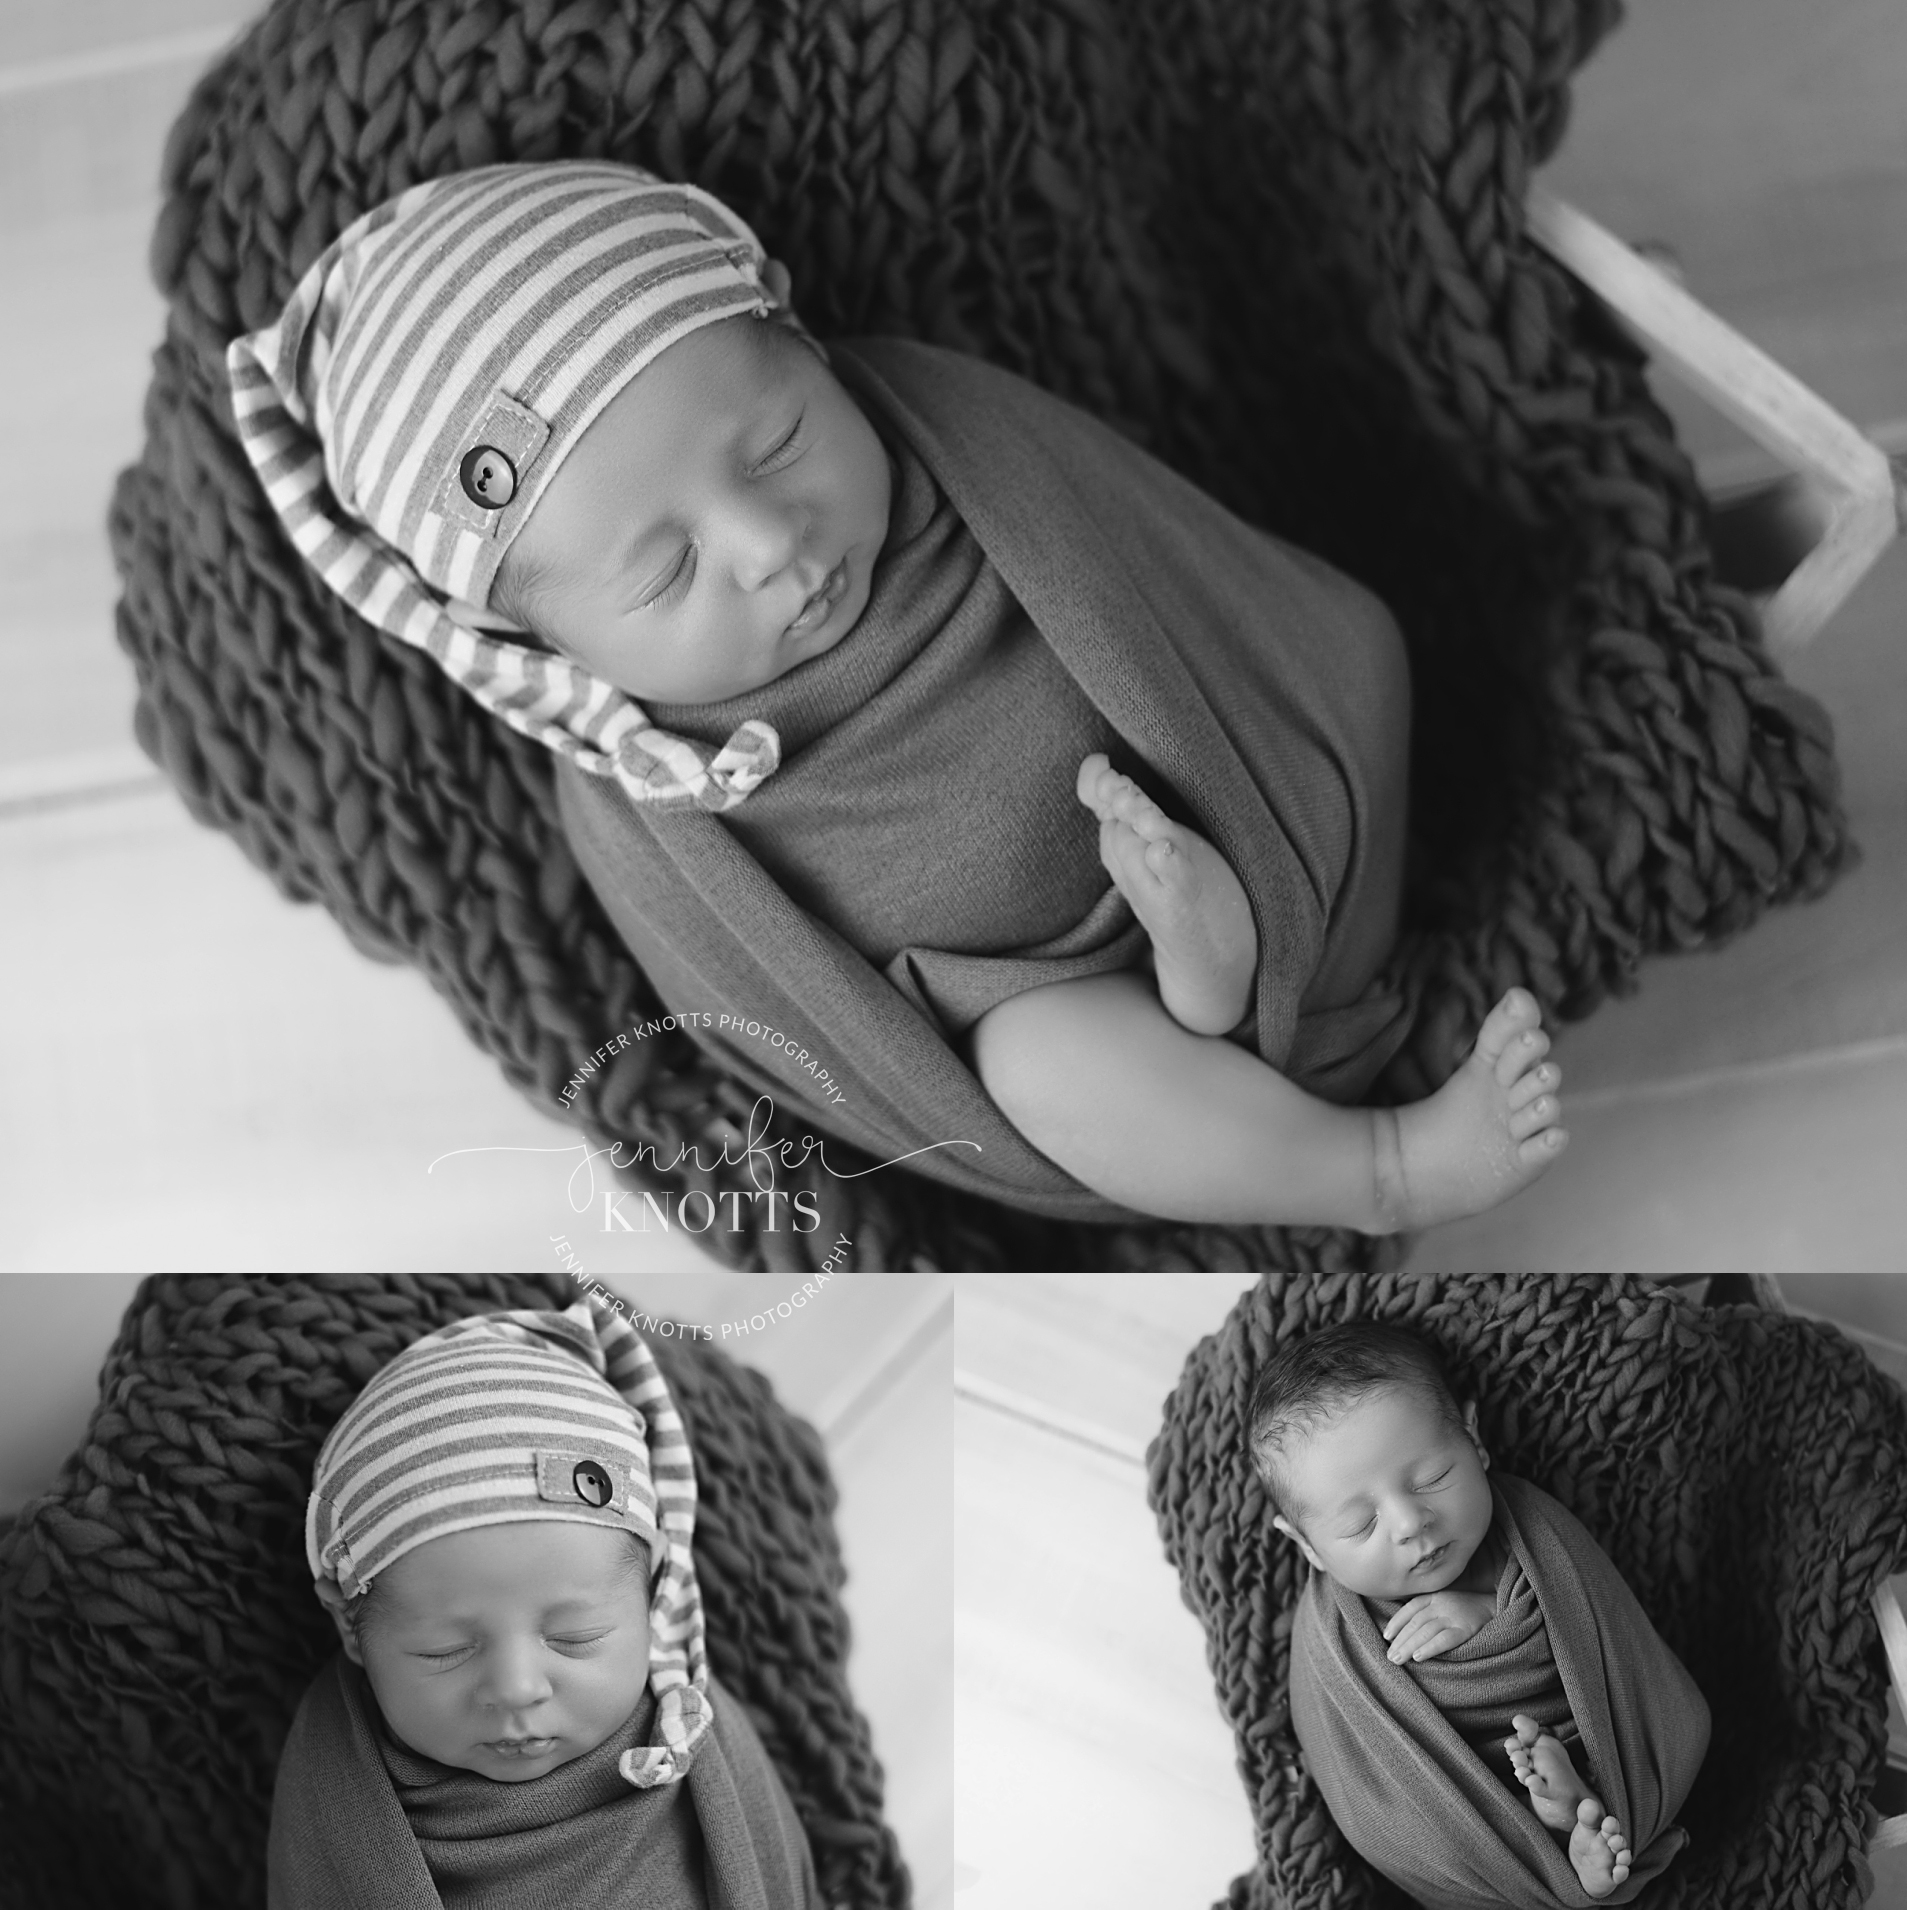 black and white images of baby boy with sleepy cap